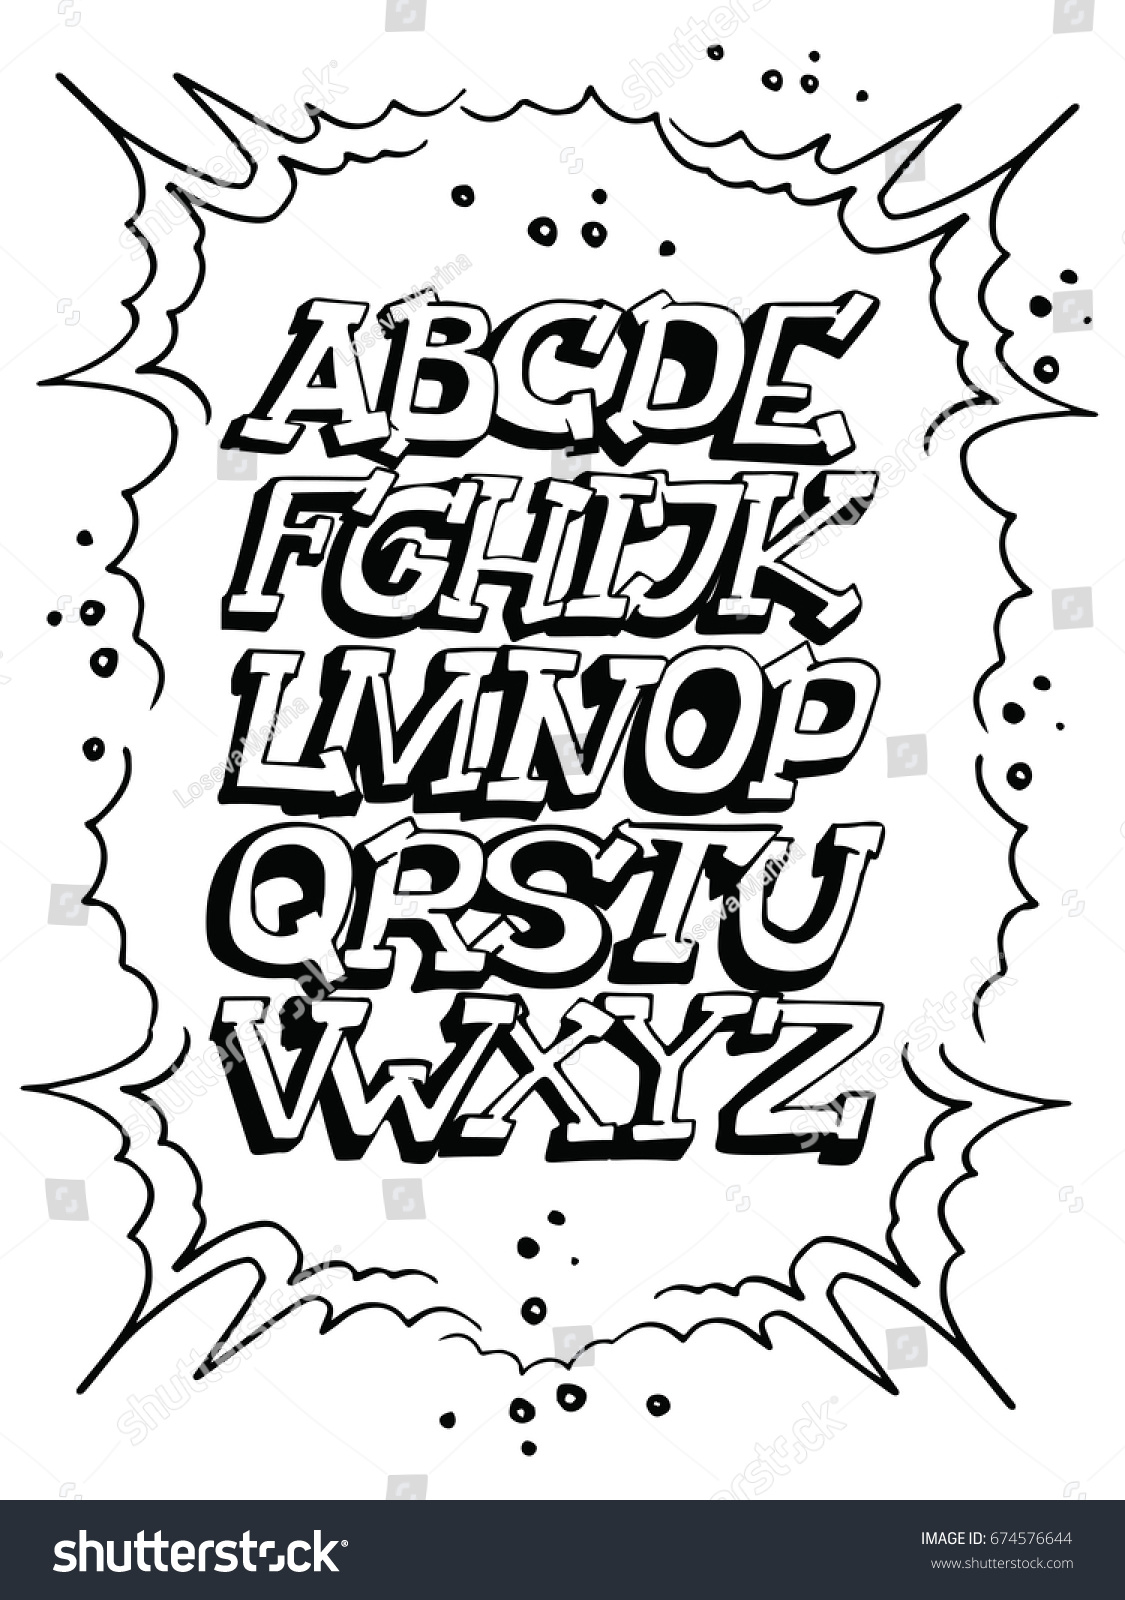 Graffiti alphabet graffiti elements around the font street style vector letters